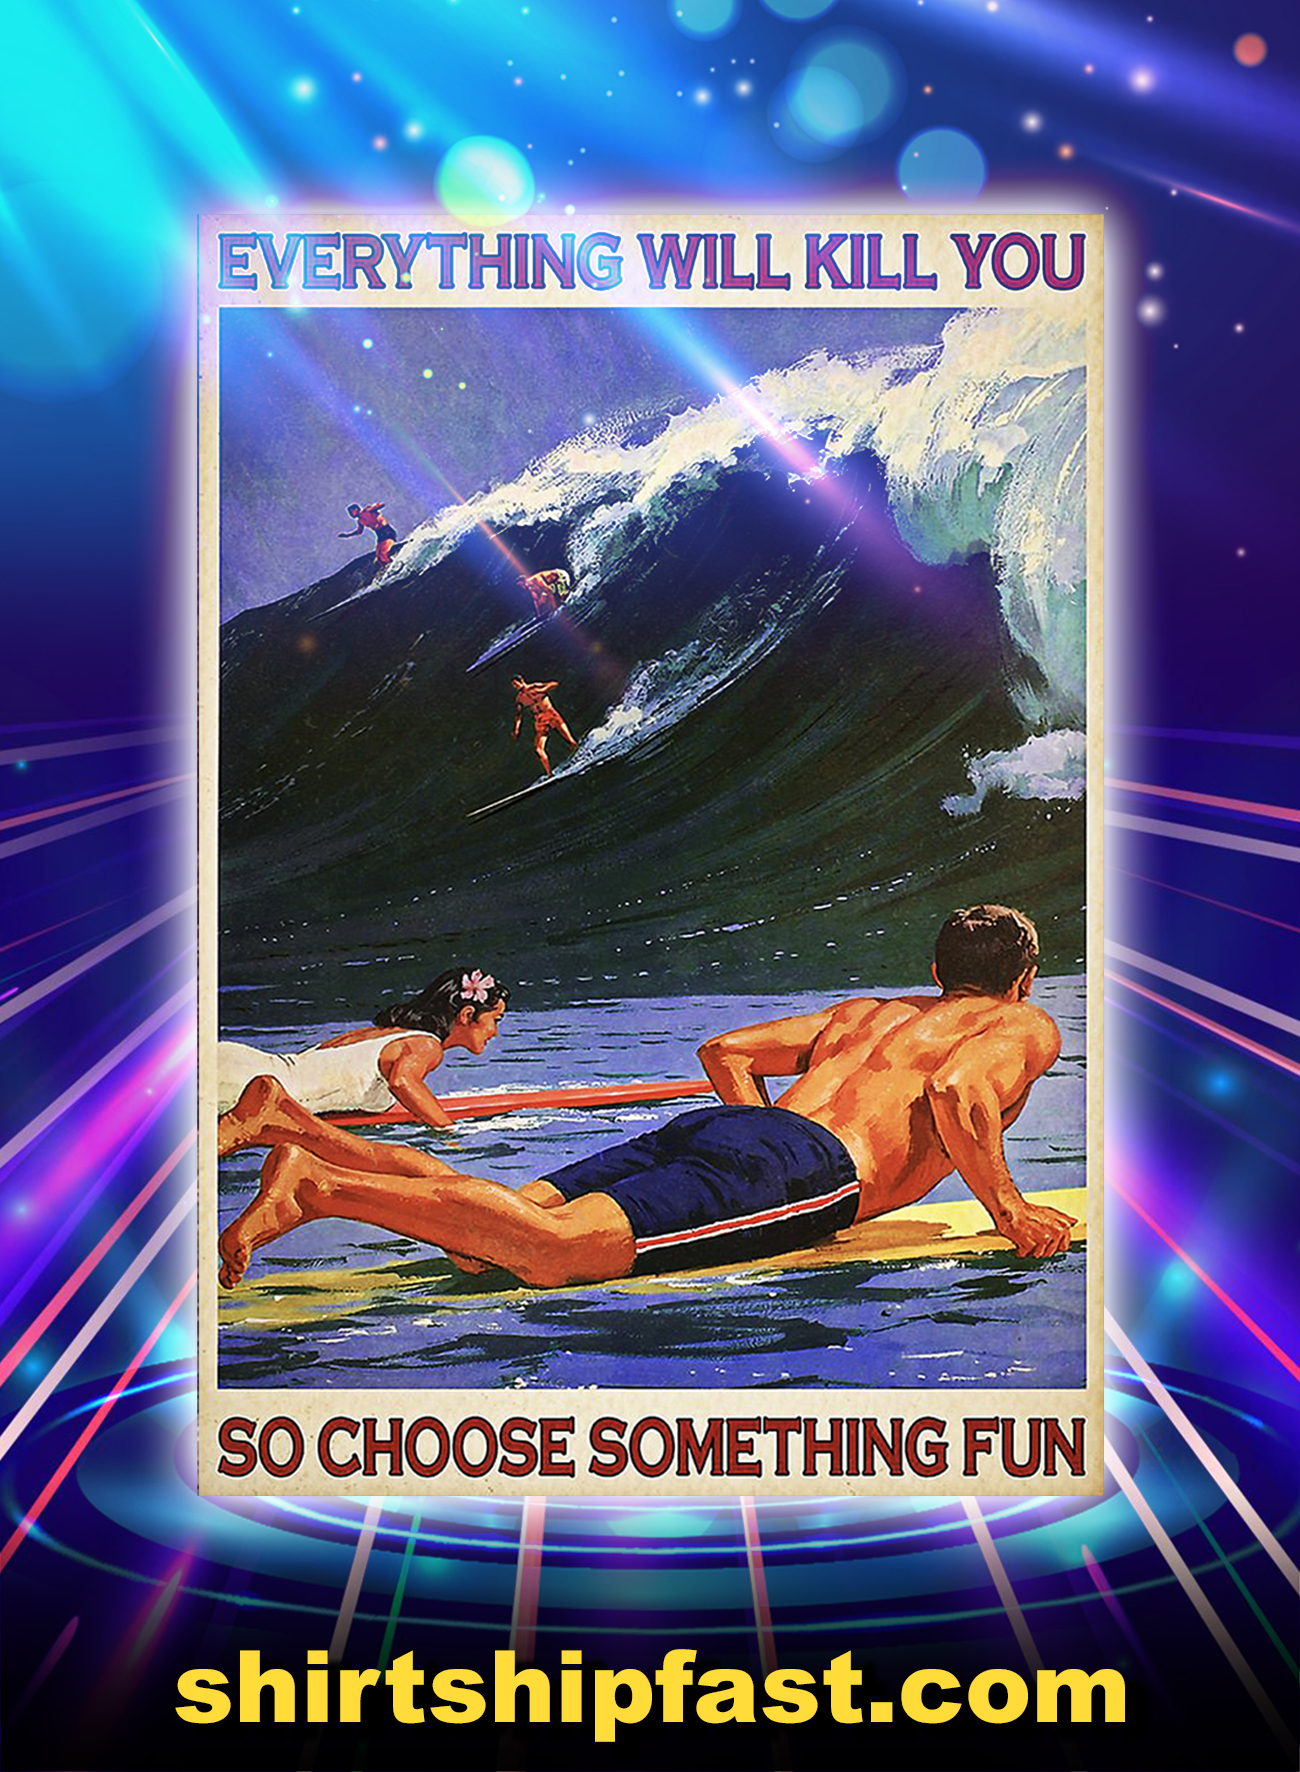 Surfing everything will kill you so choose something fun poster - A1